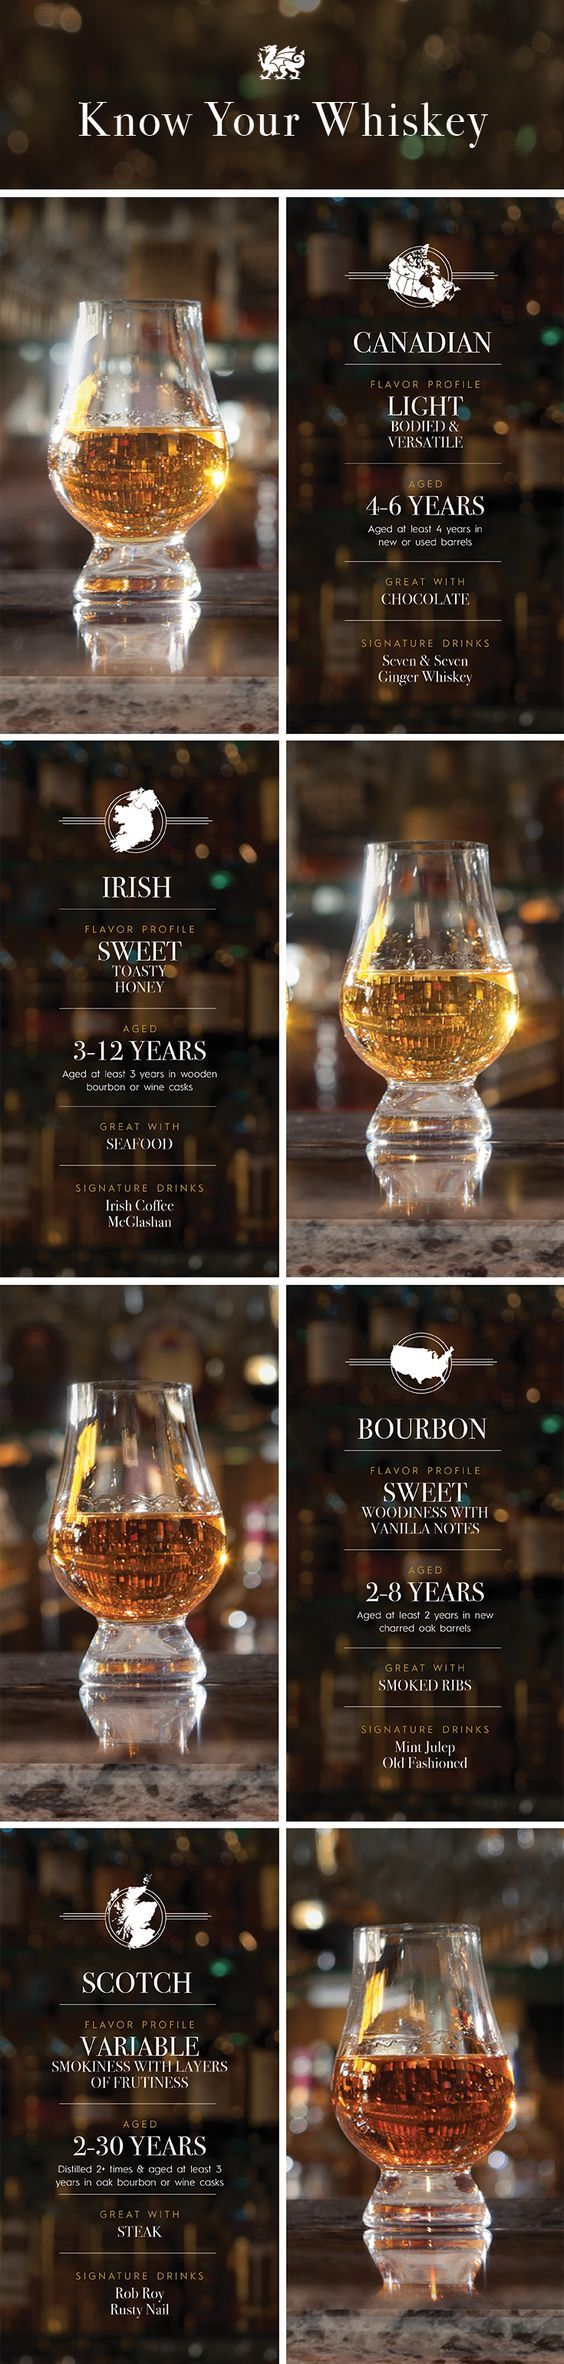 A bourbon is not a Canadian is not a Scotch is not an Irish. Get your whiskeys straight thanks to this handy infographic by Cambria.